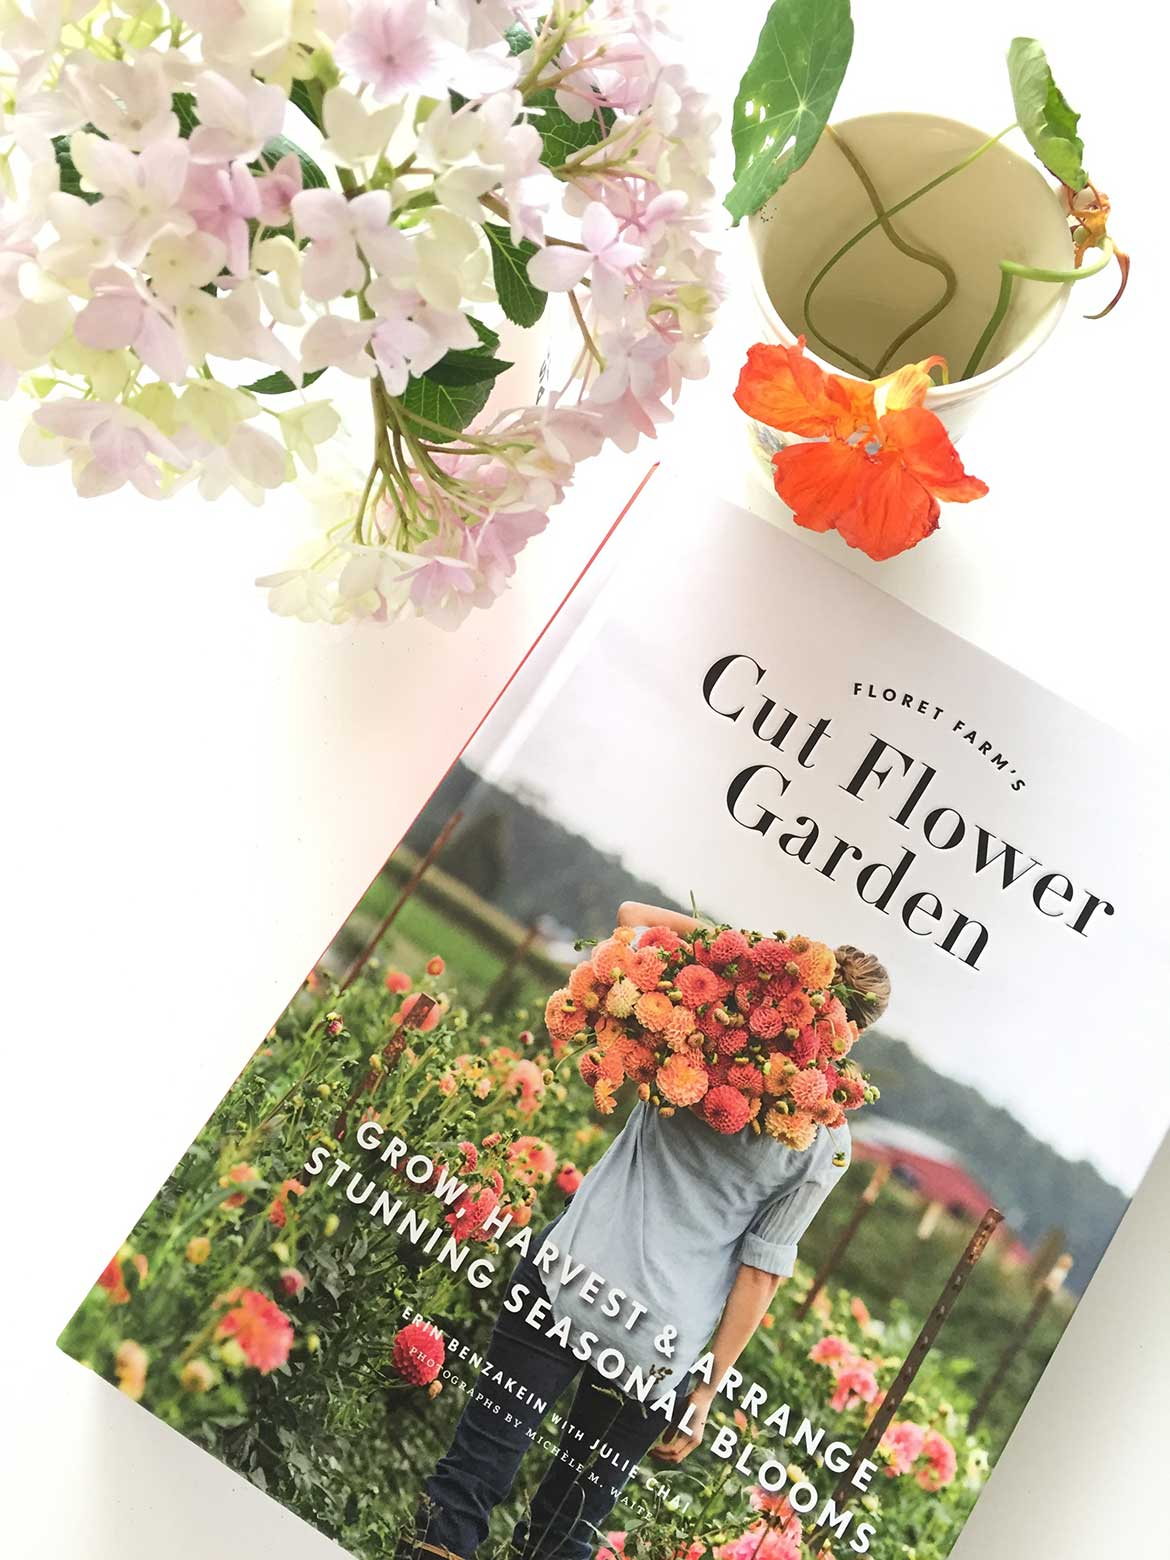 Cut Flower Garden by Erin Benzakein | I've started my own little plot to grow cutting flowers, using the easy to understand tips from this beautiful book.